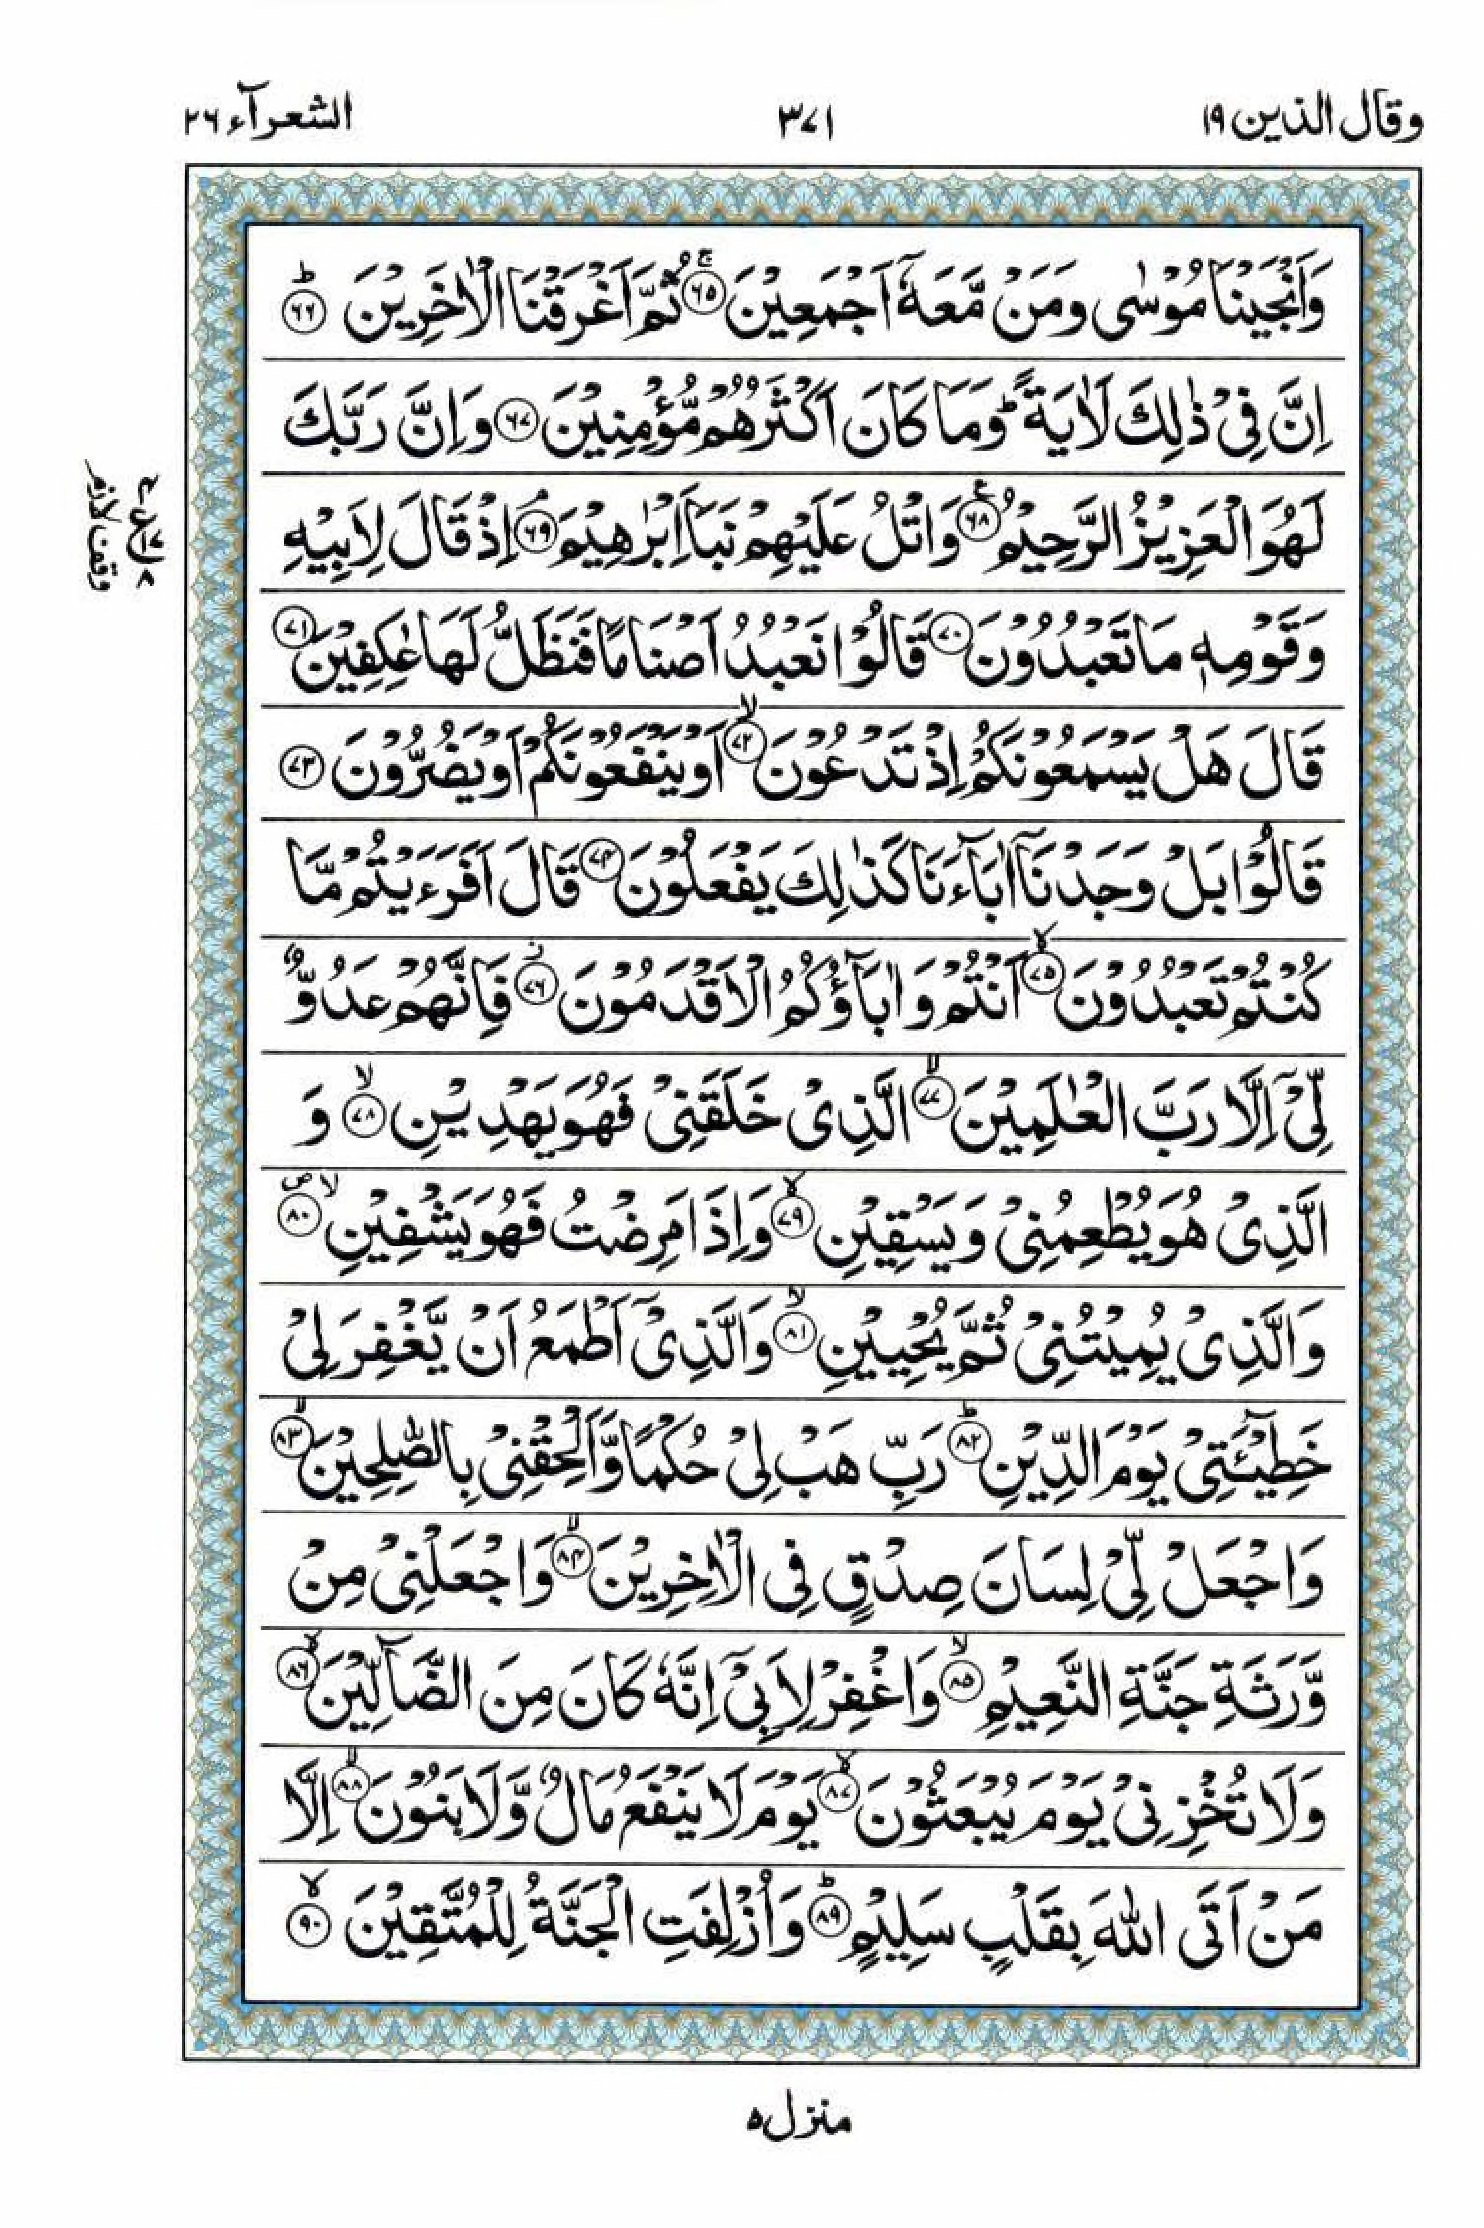 Aiou Intermediate Old Papers Spring 2006 likewise Khulasa E Mazameen E Quran  Volume 2 furthermore Misbah Link additionally Quran 15 lines also Animal Print Page Borders. on page 377 quran